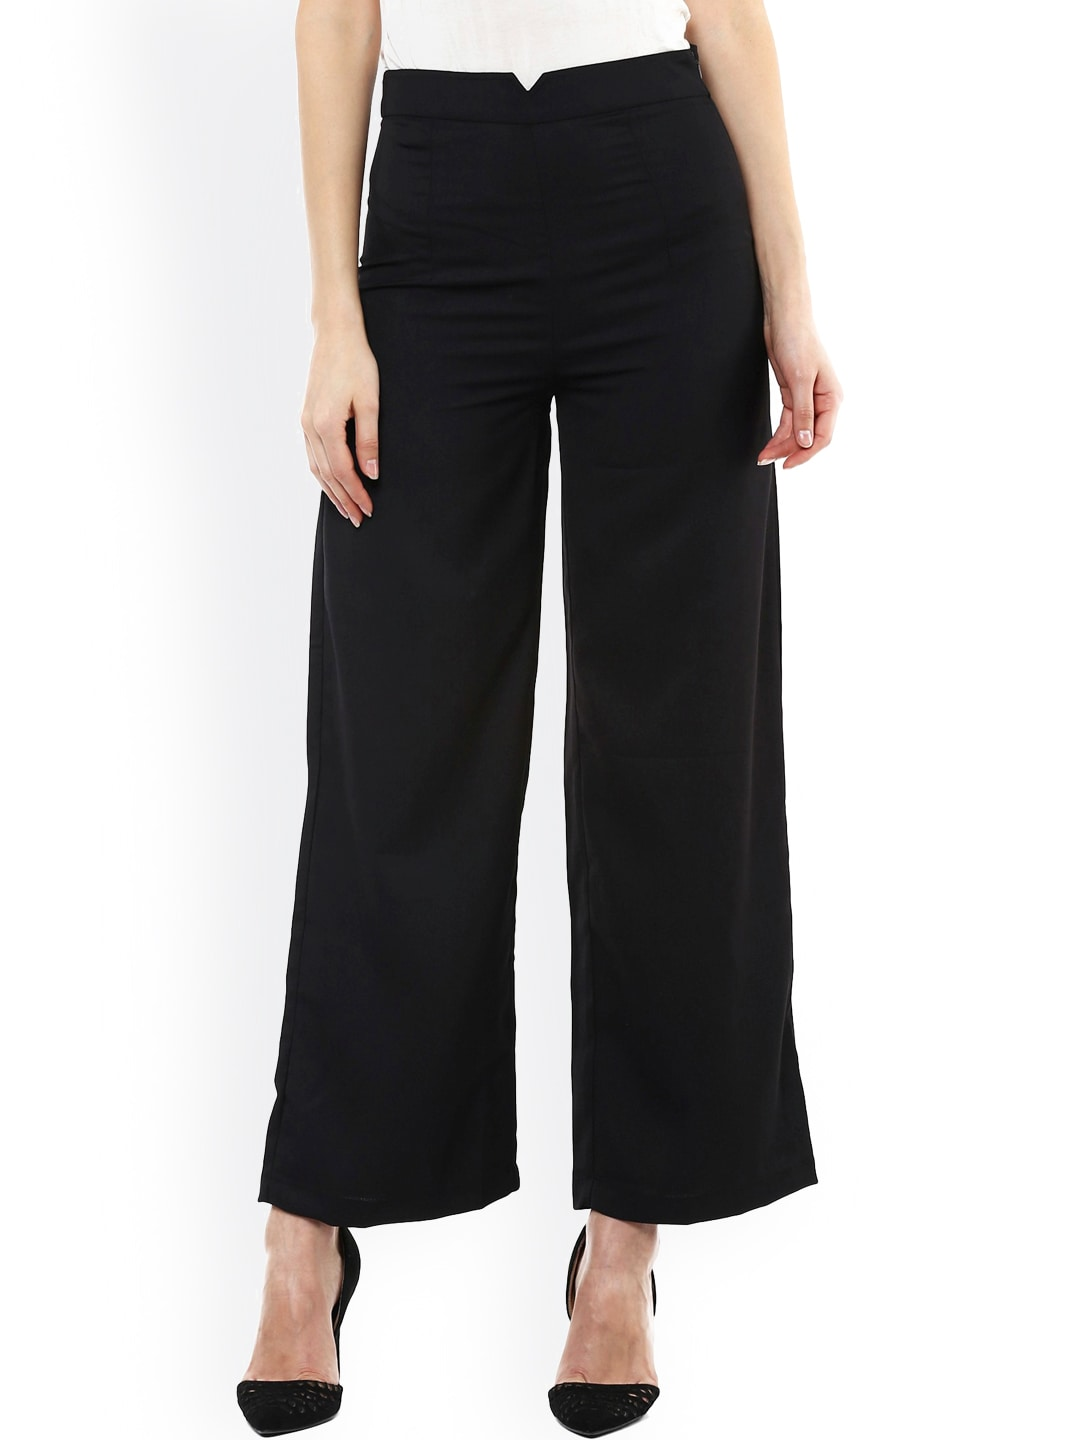 Women's Trousers - Buy Ladies Pants & Trousers Online